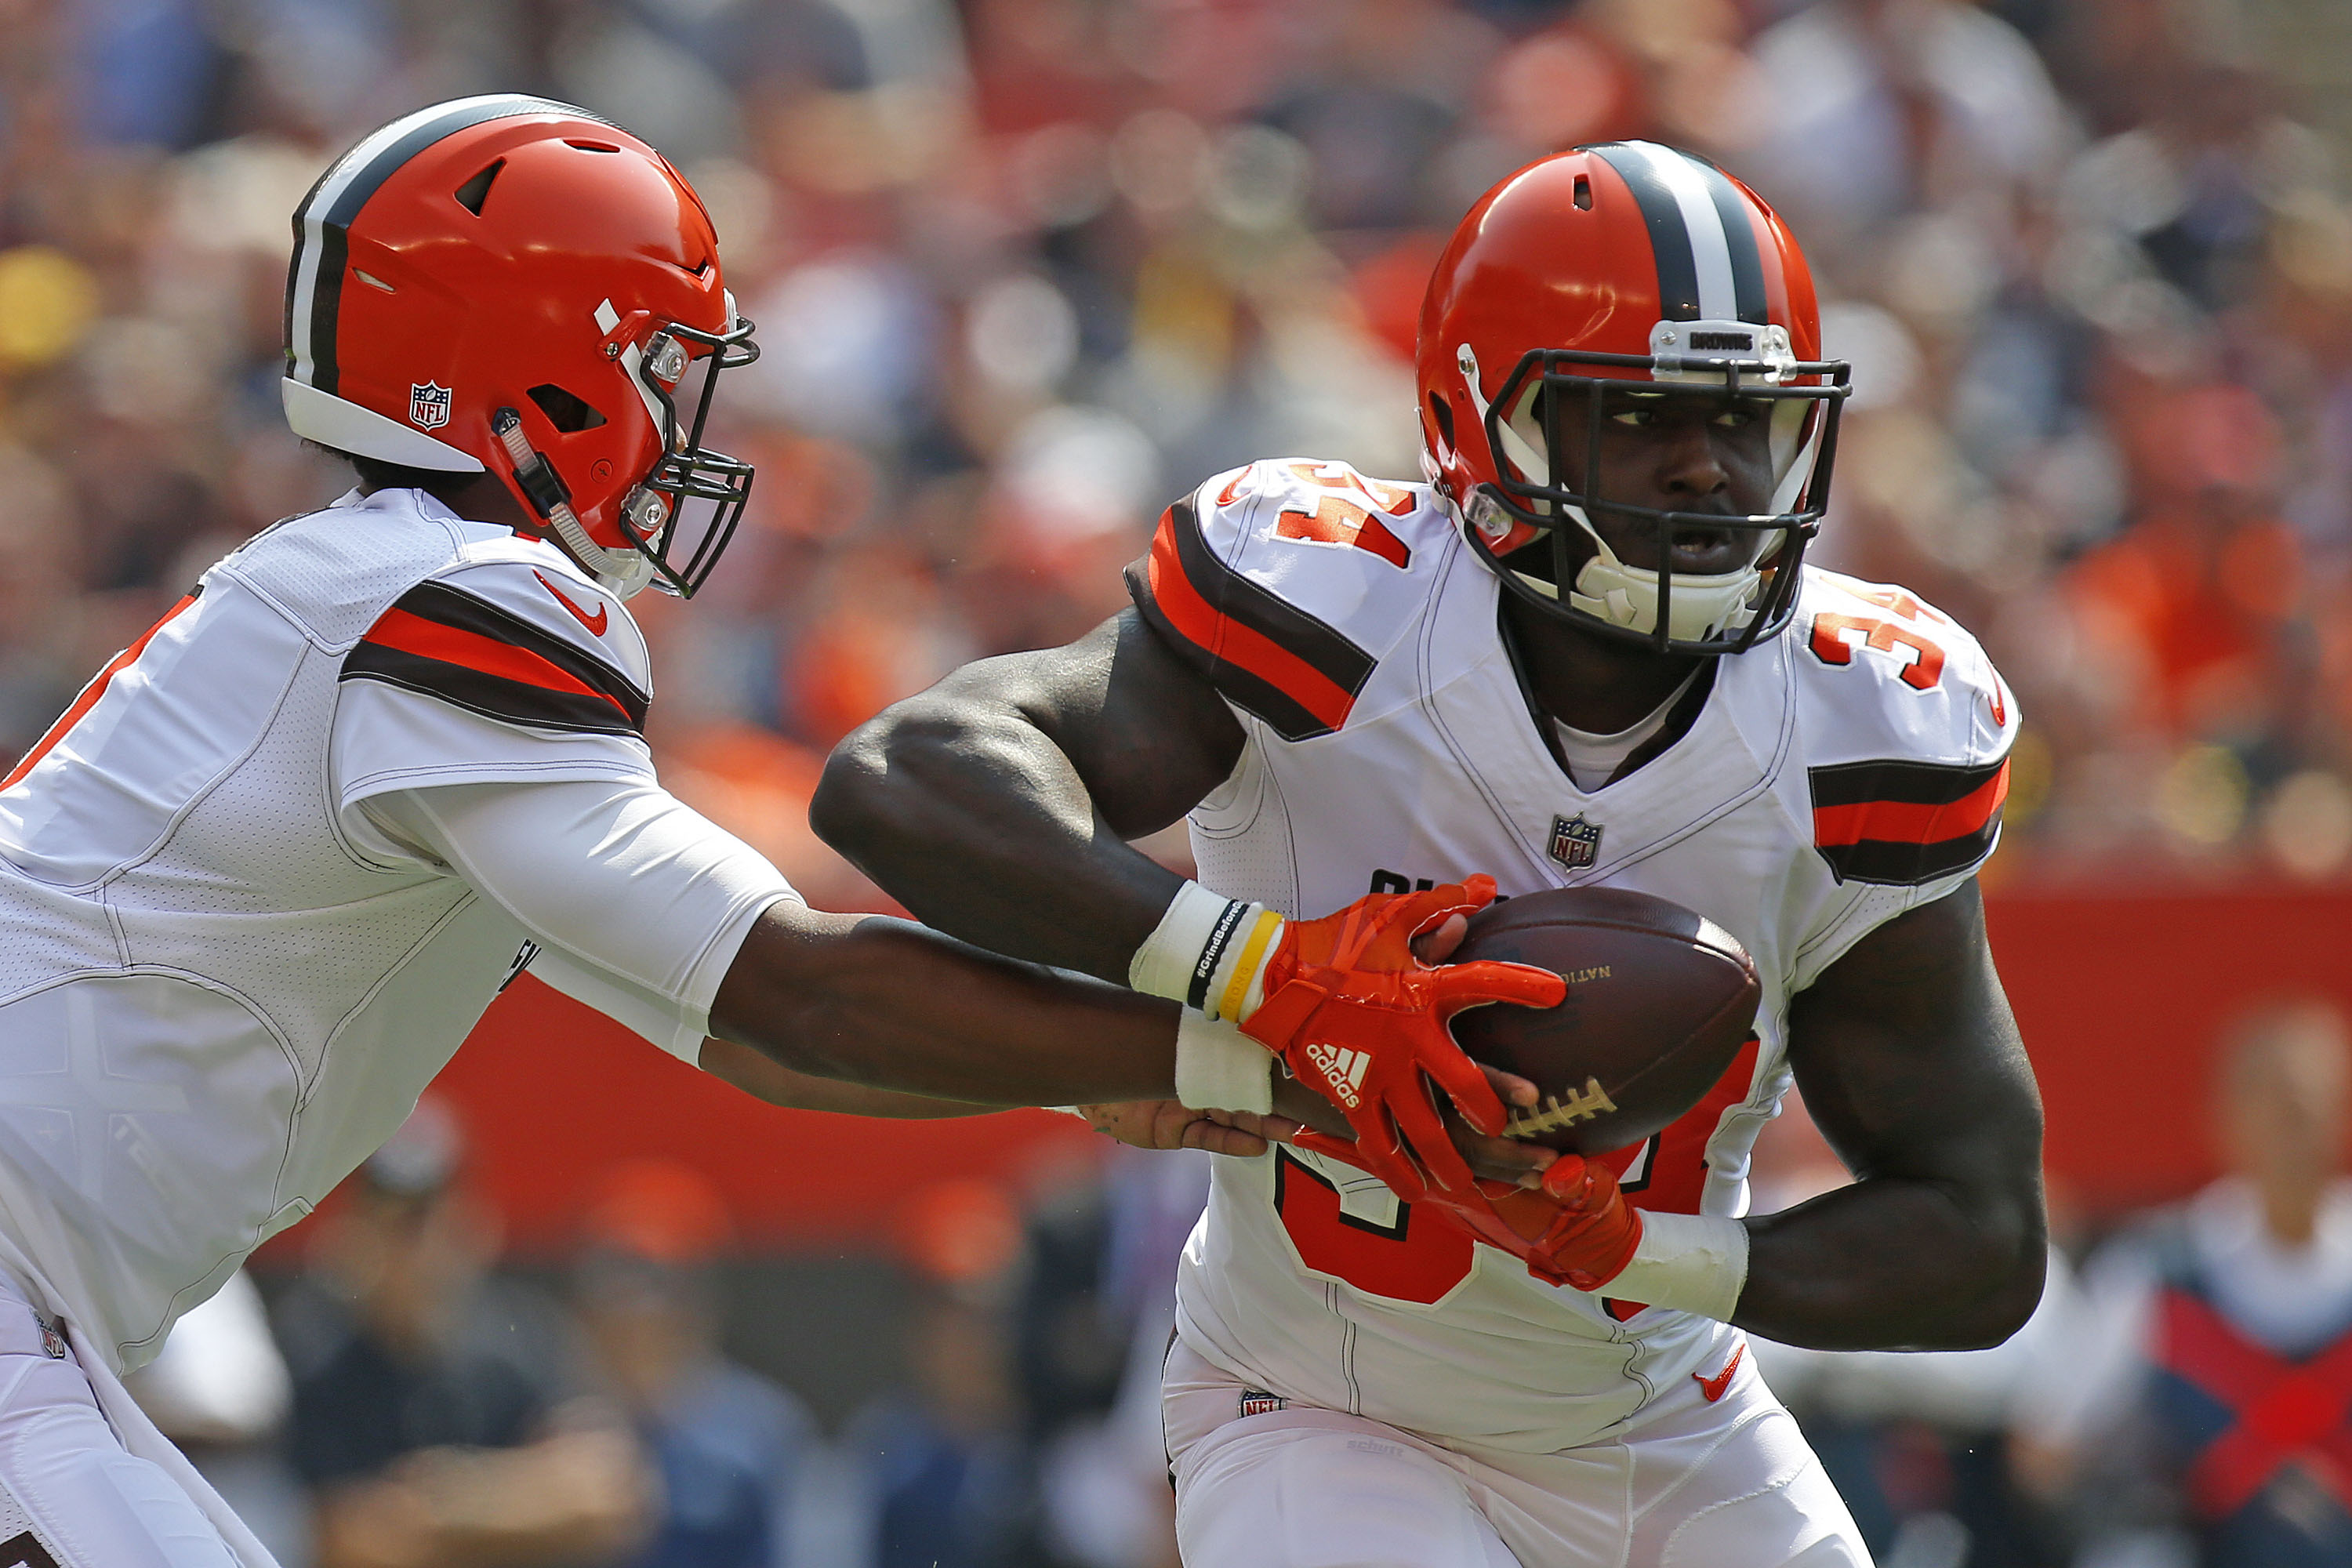 As the running game sputters, frustration grows inside RB Isaiah Crowell